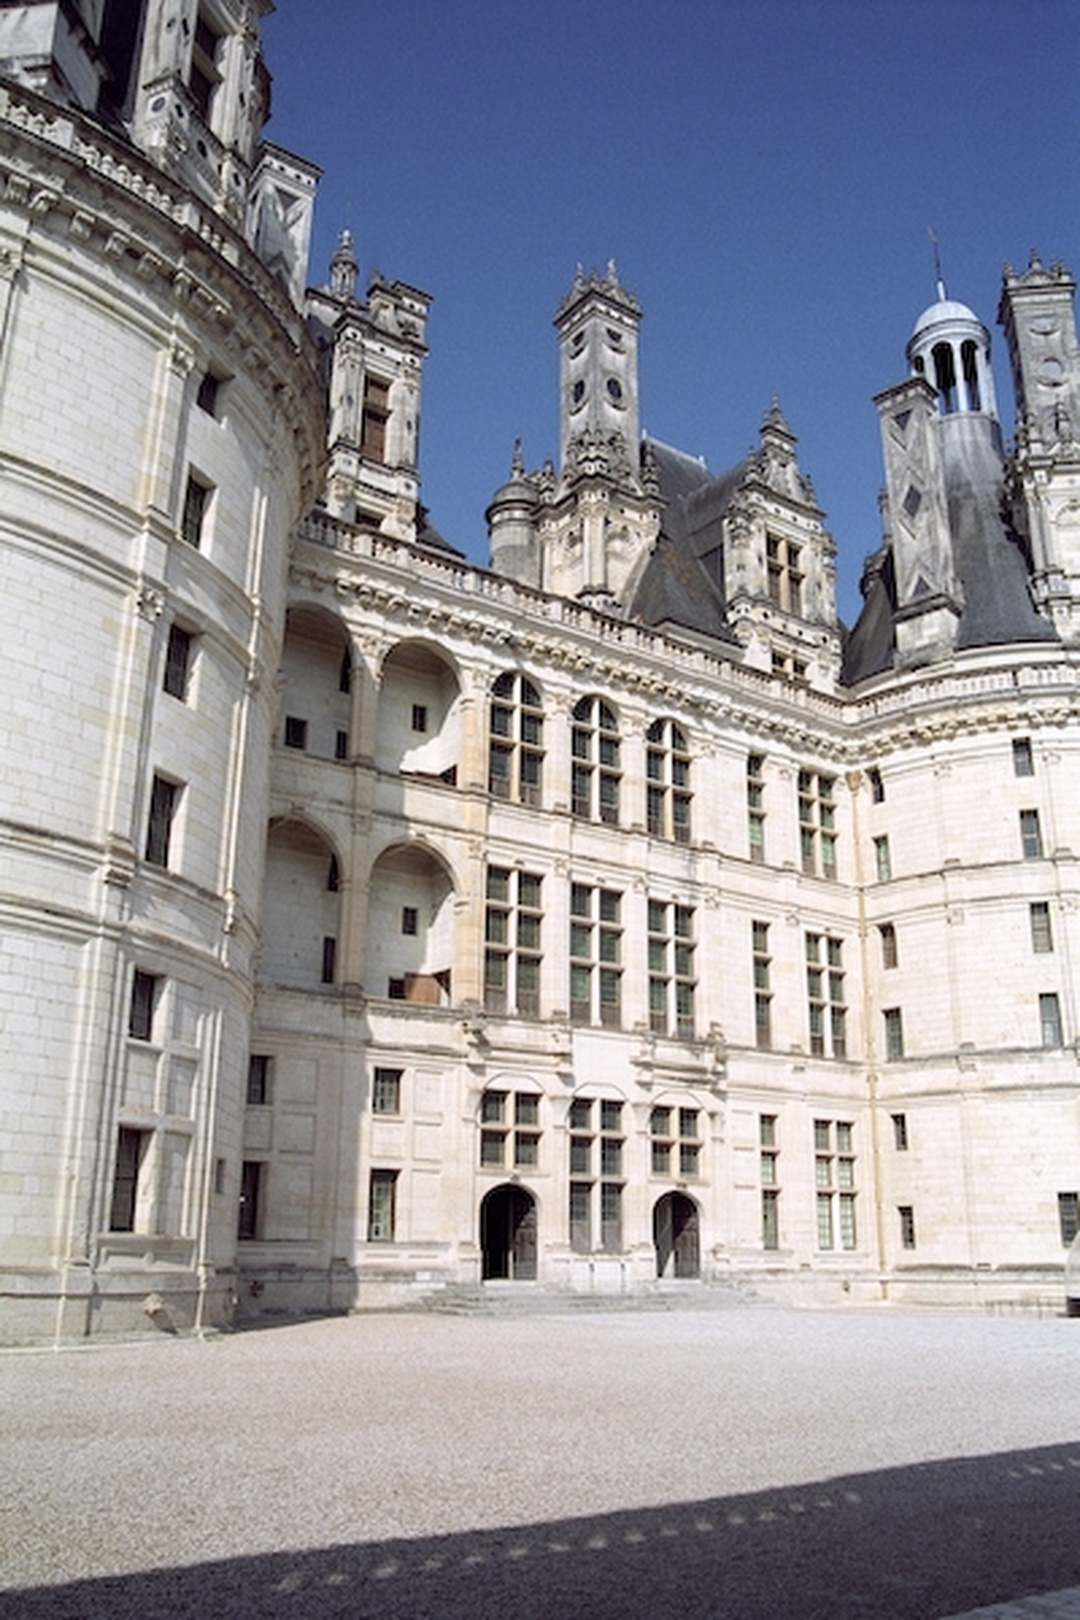 Photo of the February 5, 2016 6:50 PM, Château de Chambord, Château, 41250 Chambord, France